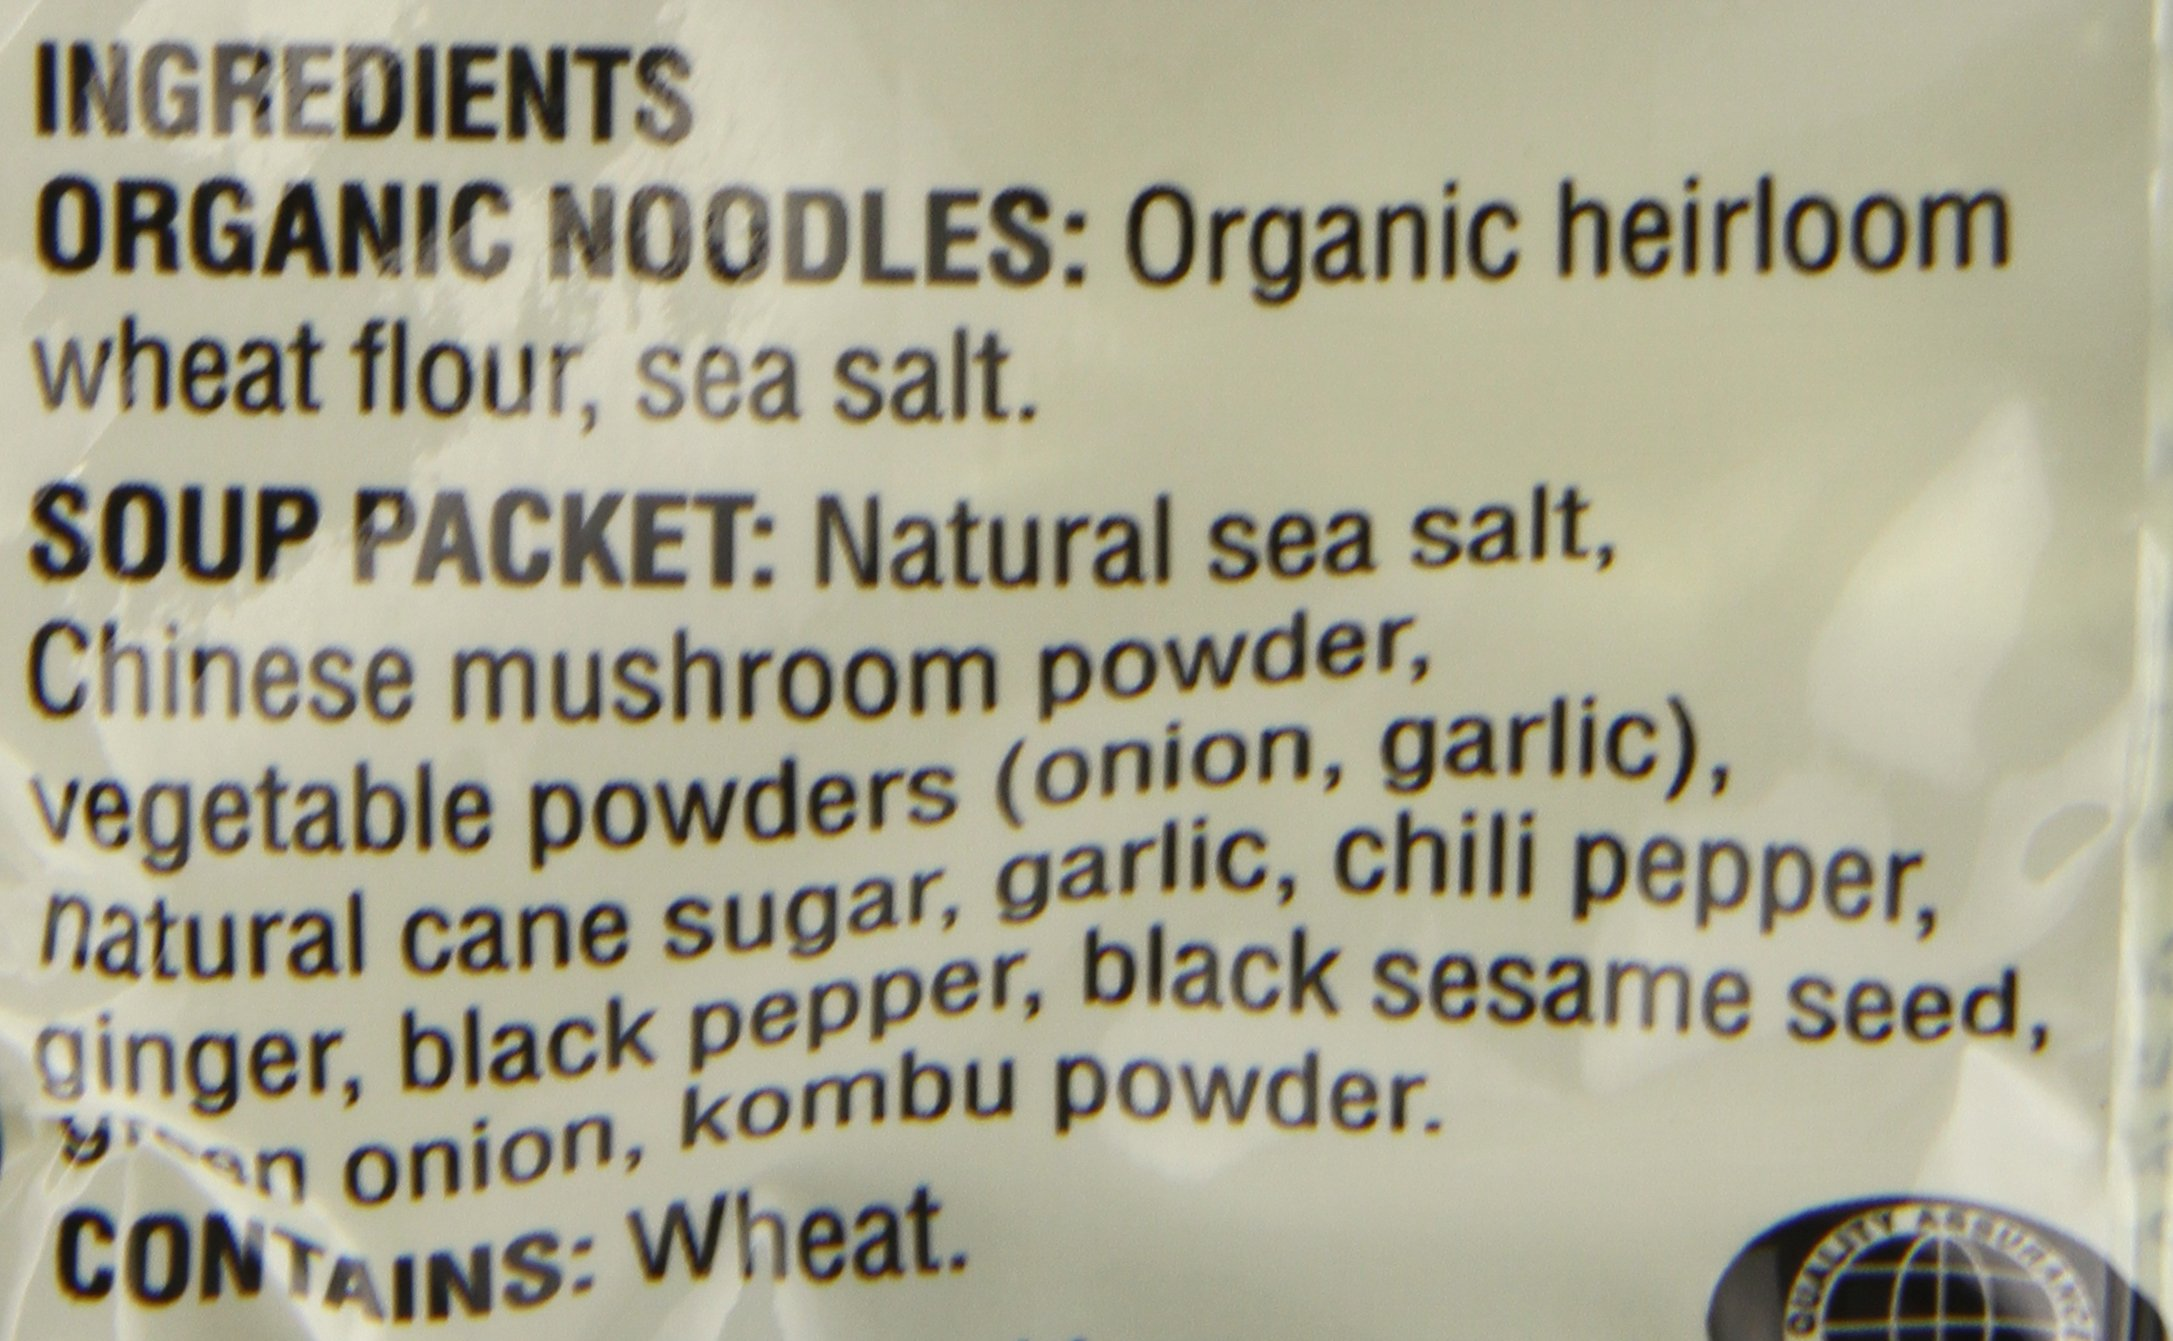 KOYO Reduced Sodium Garlic and Pepper Ramen Made with Organic Noodles, 2.1 Ounce (Pack of 12) by Koyo (Image #3)